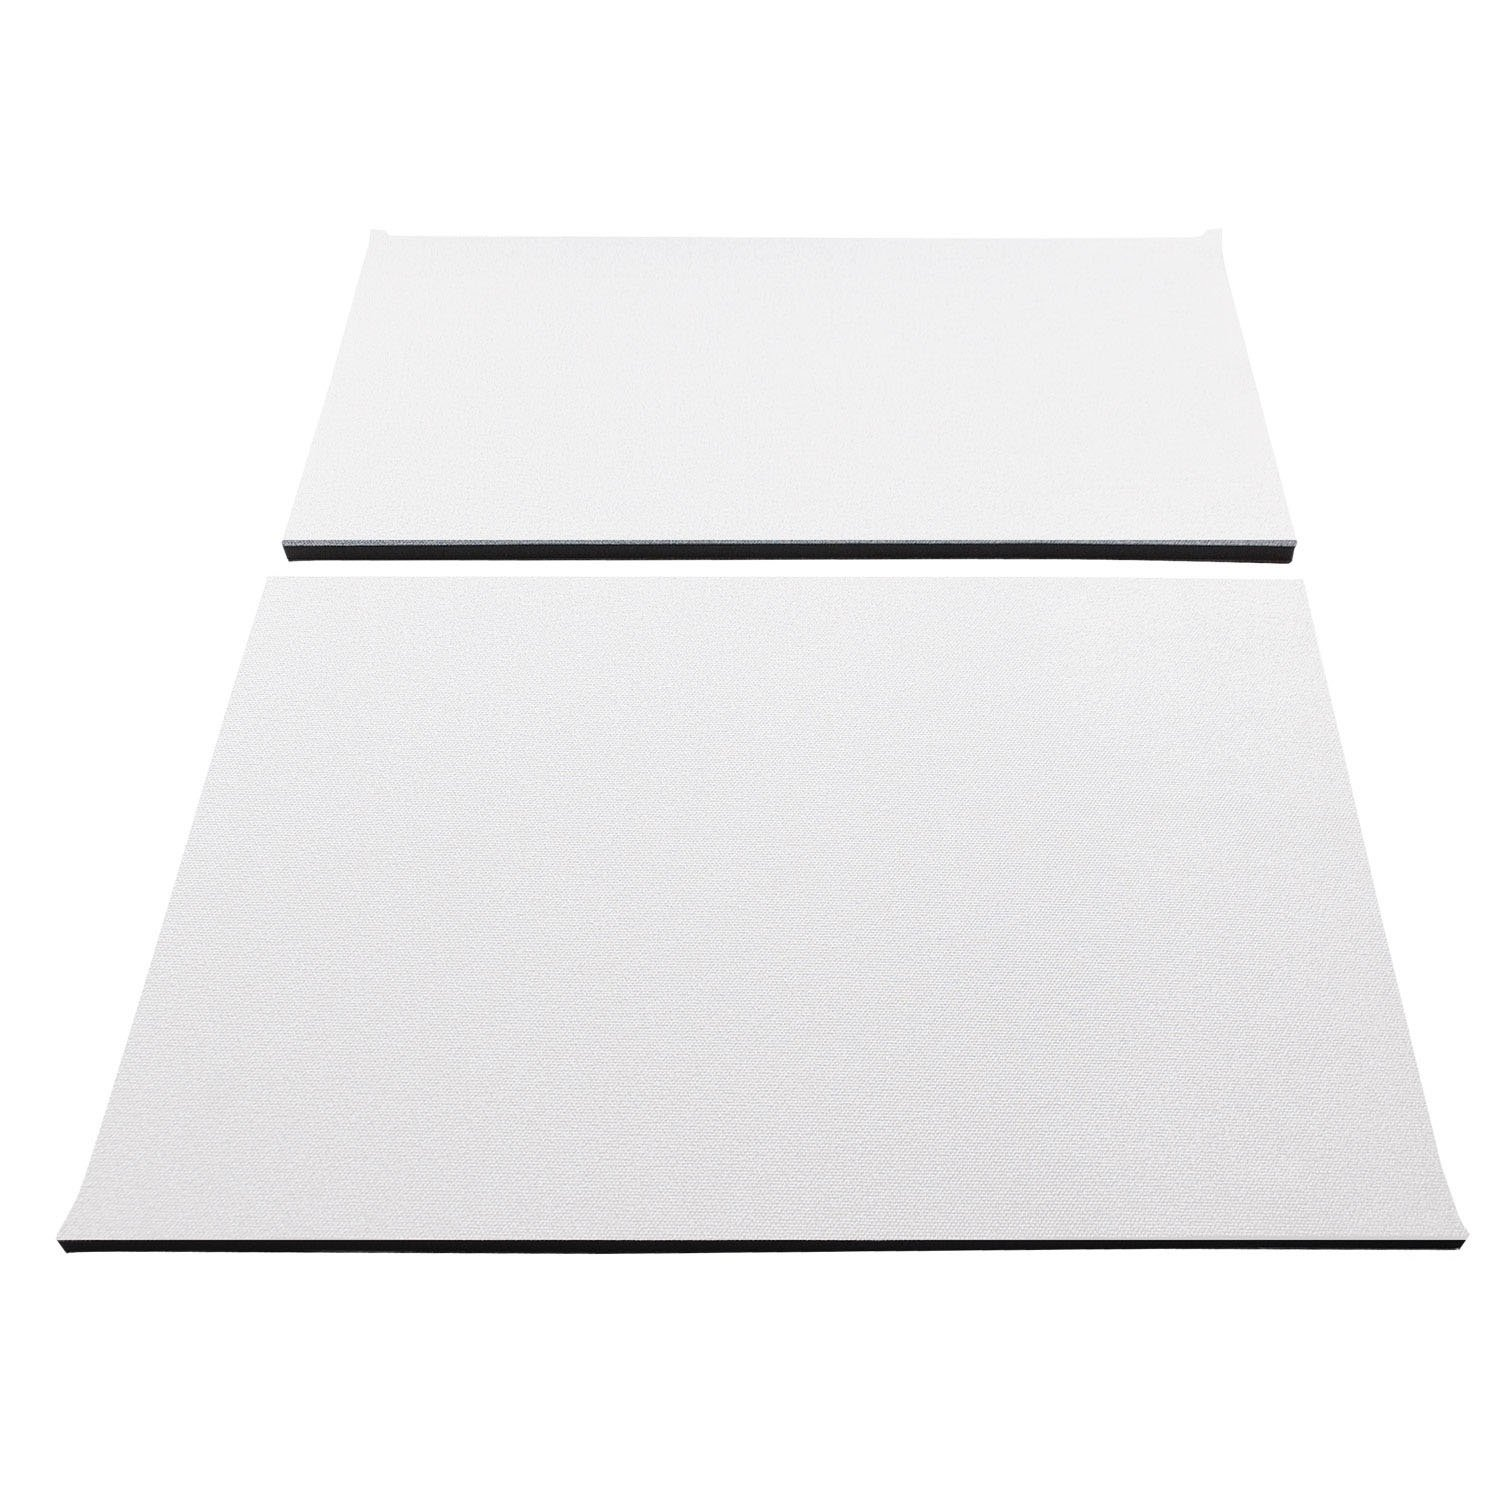 Design Engineering 050145 Boom Mat Sound Deadening Headliner for Jeep Wrangler with Factory Sound Bar (1997-2002) and TJ without Roll Bar Speakers (1997-2006) - White by Design Engineering